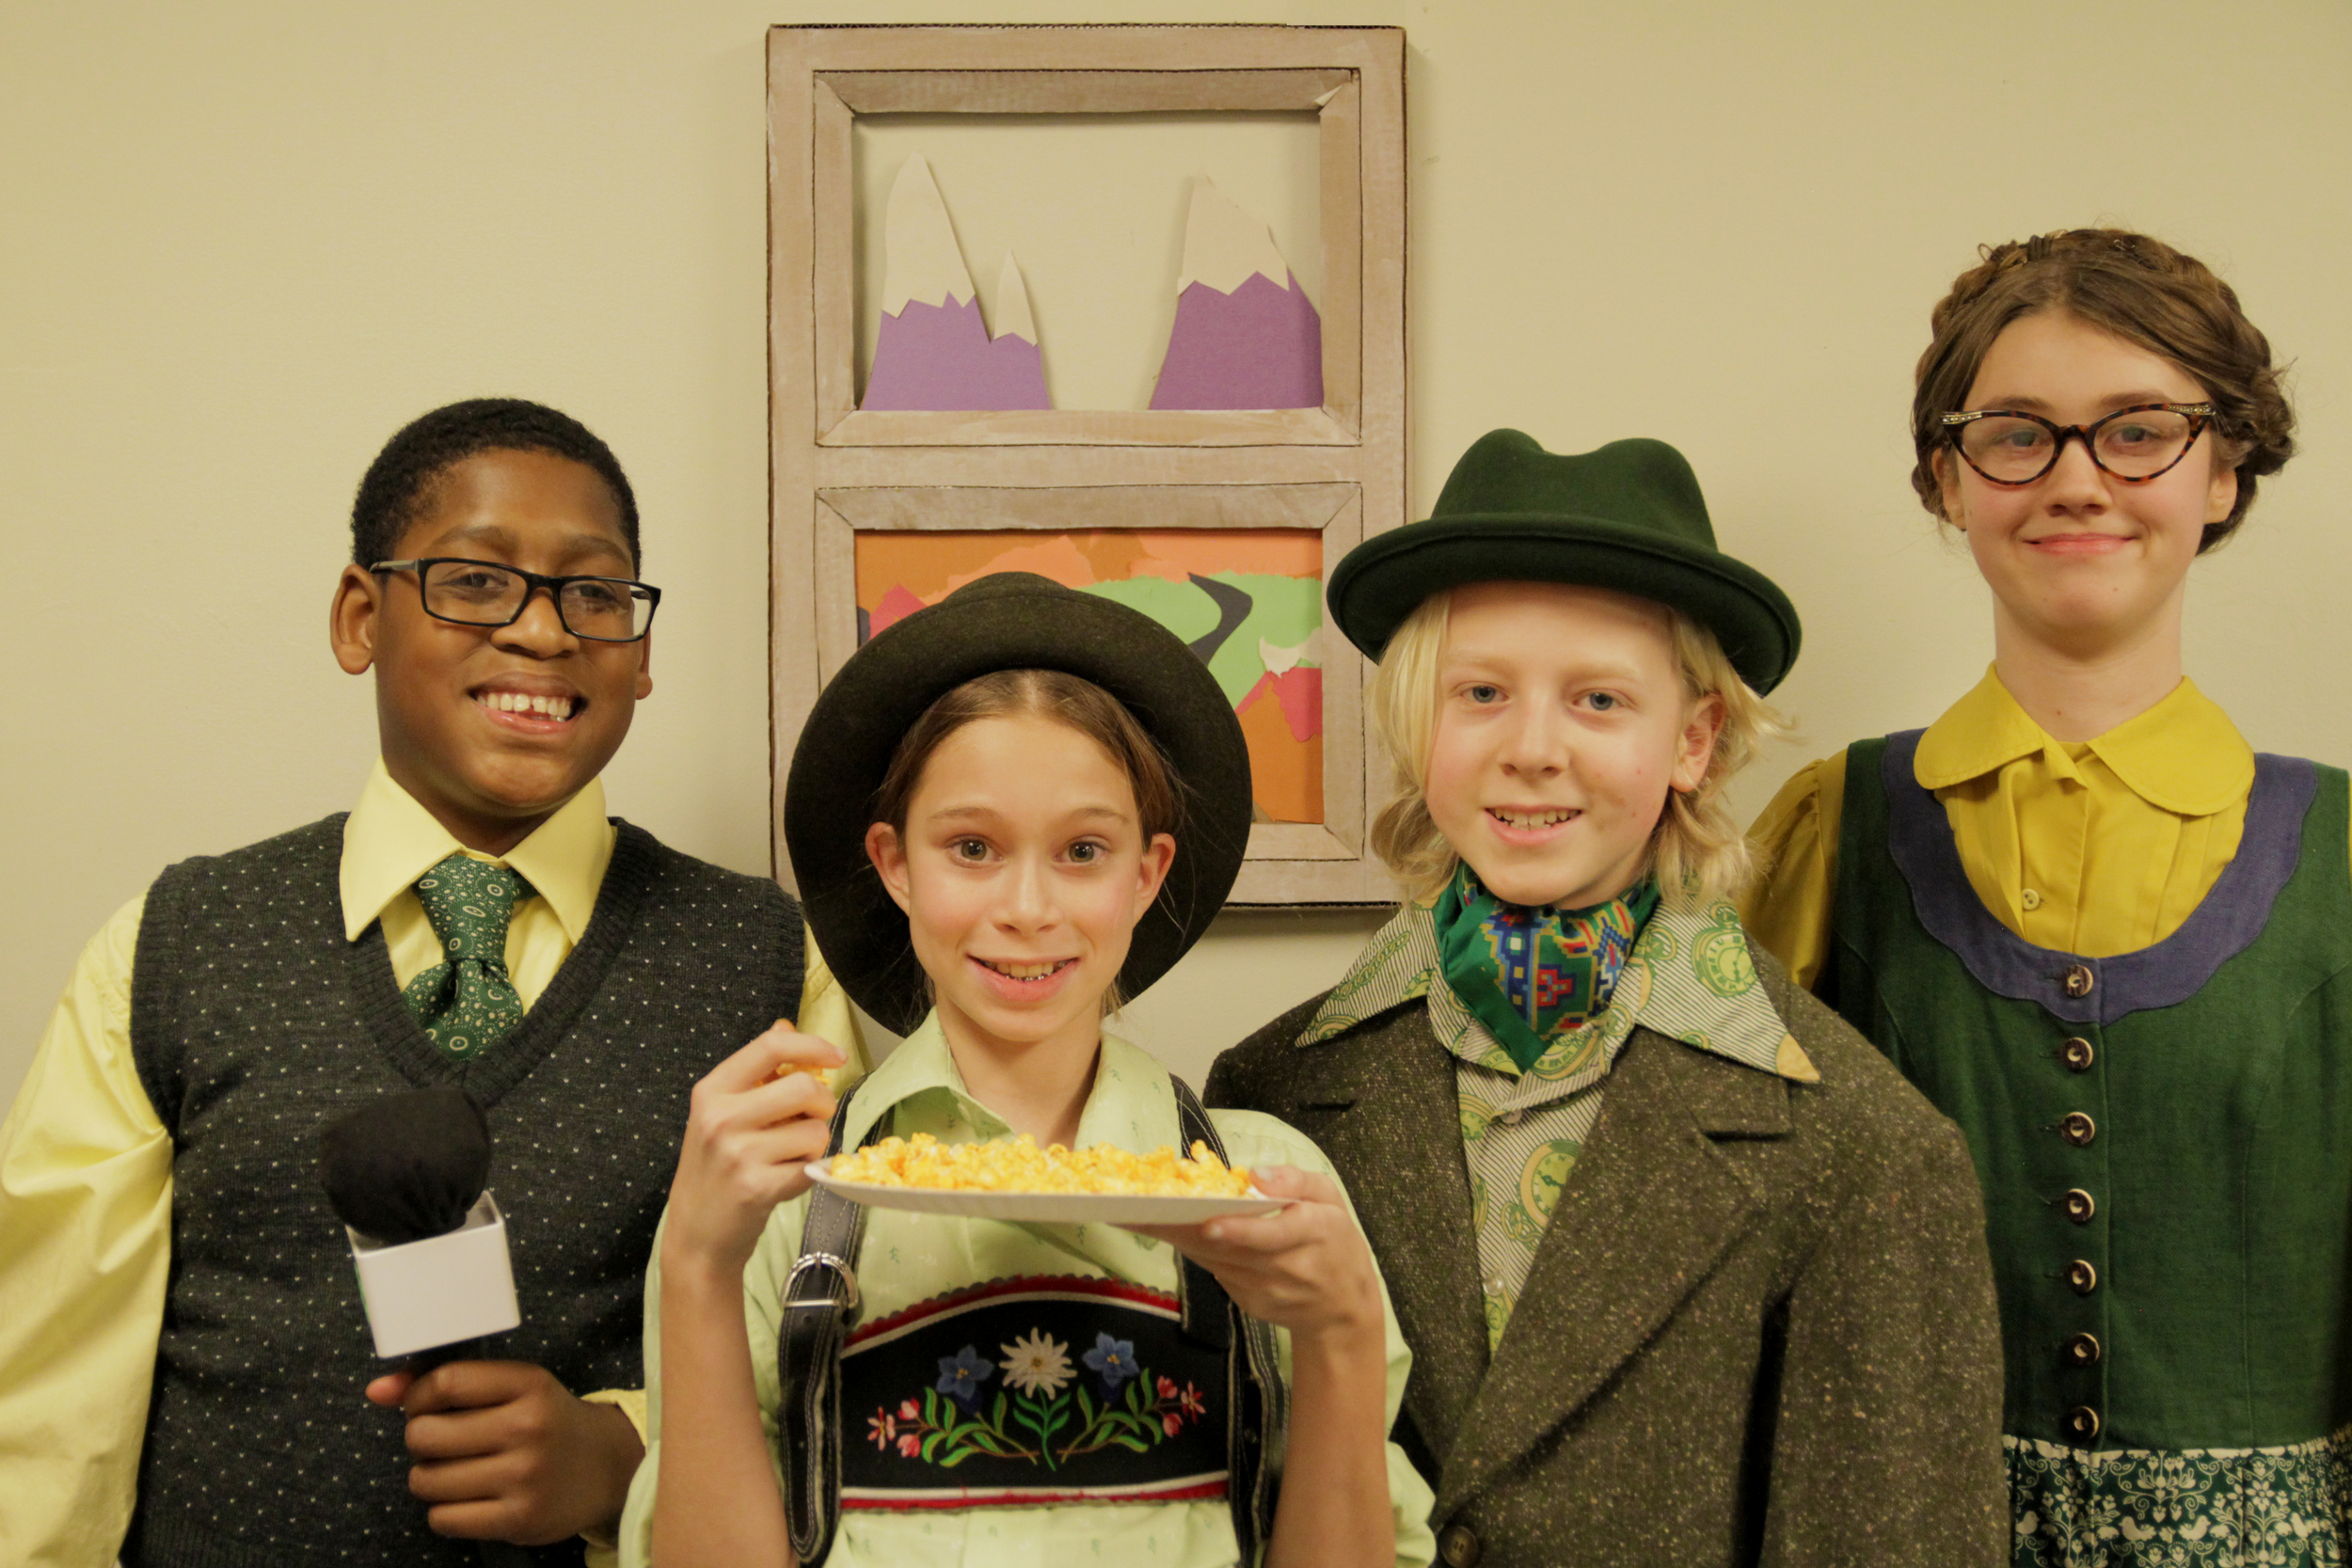 Still from newcast video shoot featuring Augustus Gloop and family.